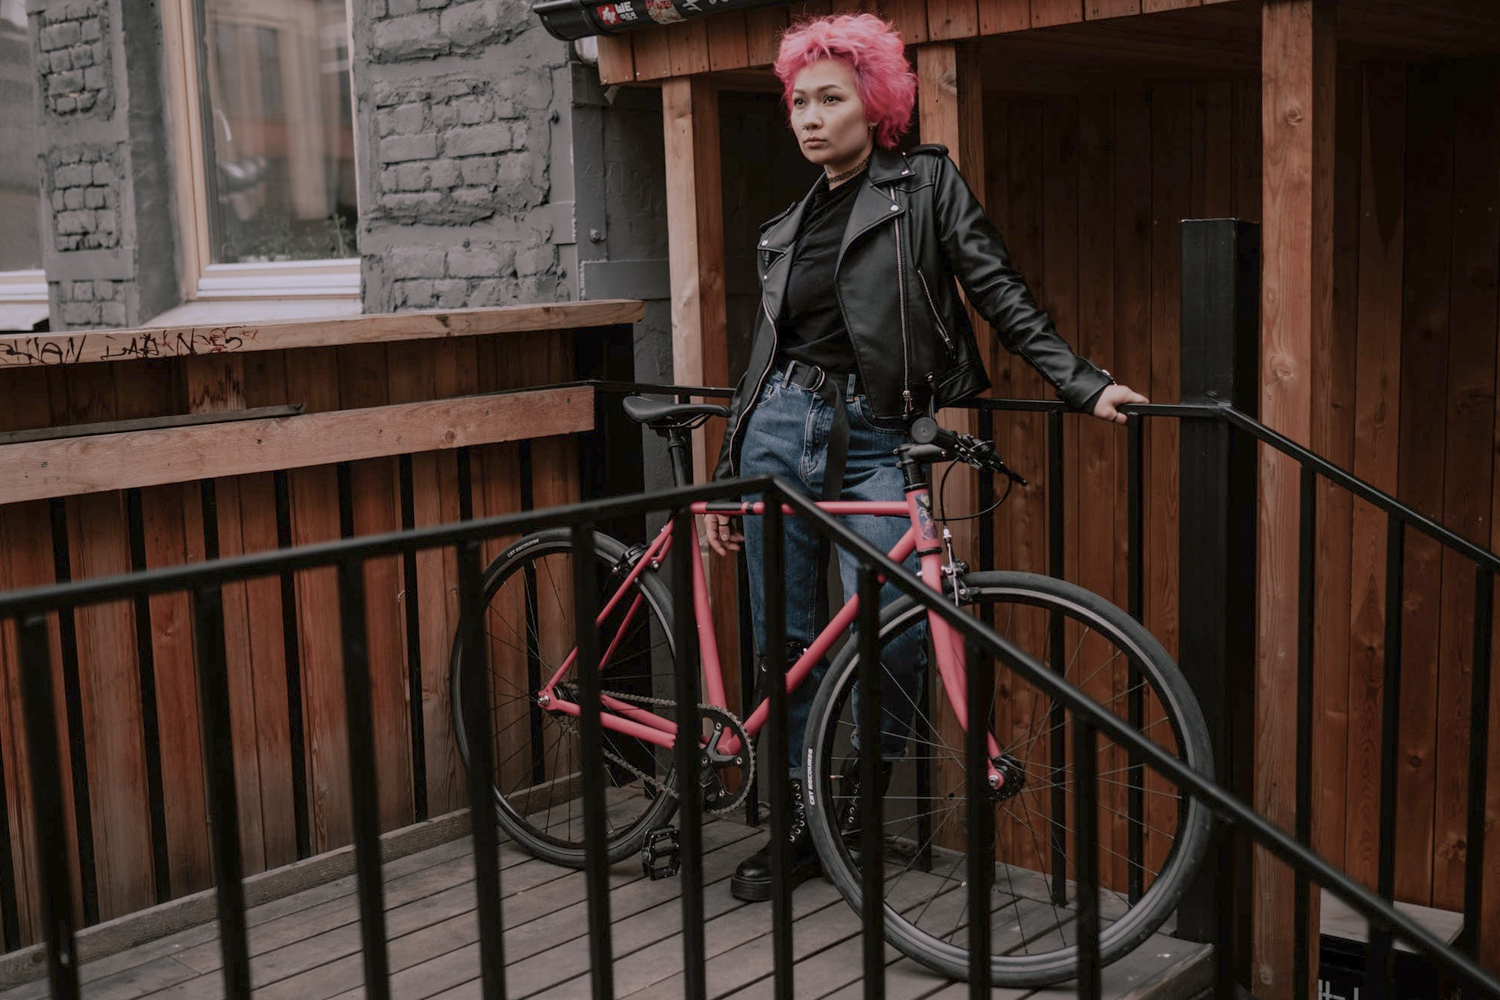 woman in a leather jacket is posing next to her bike